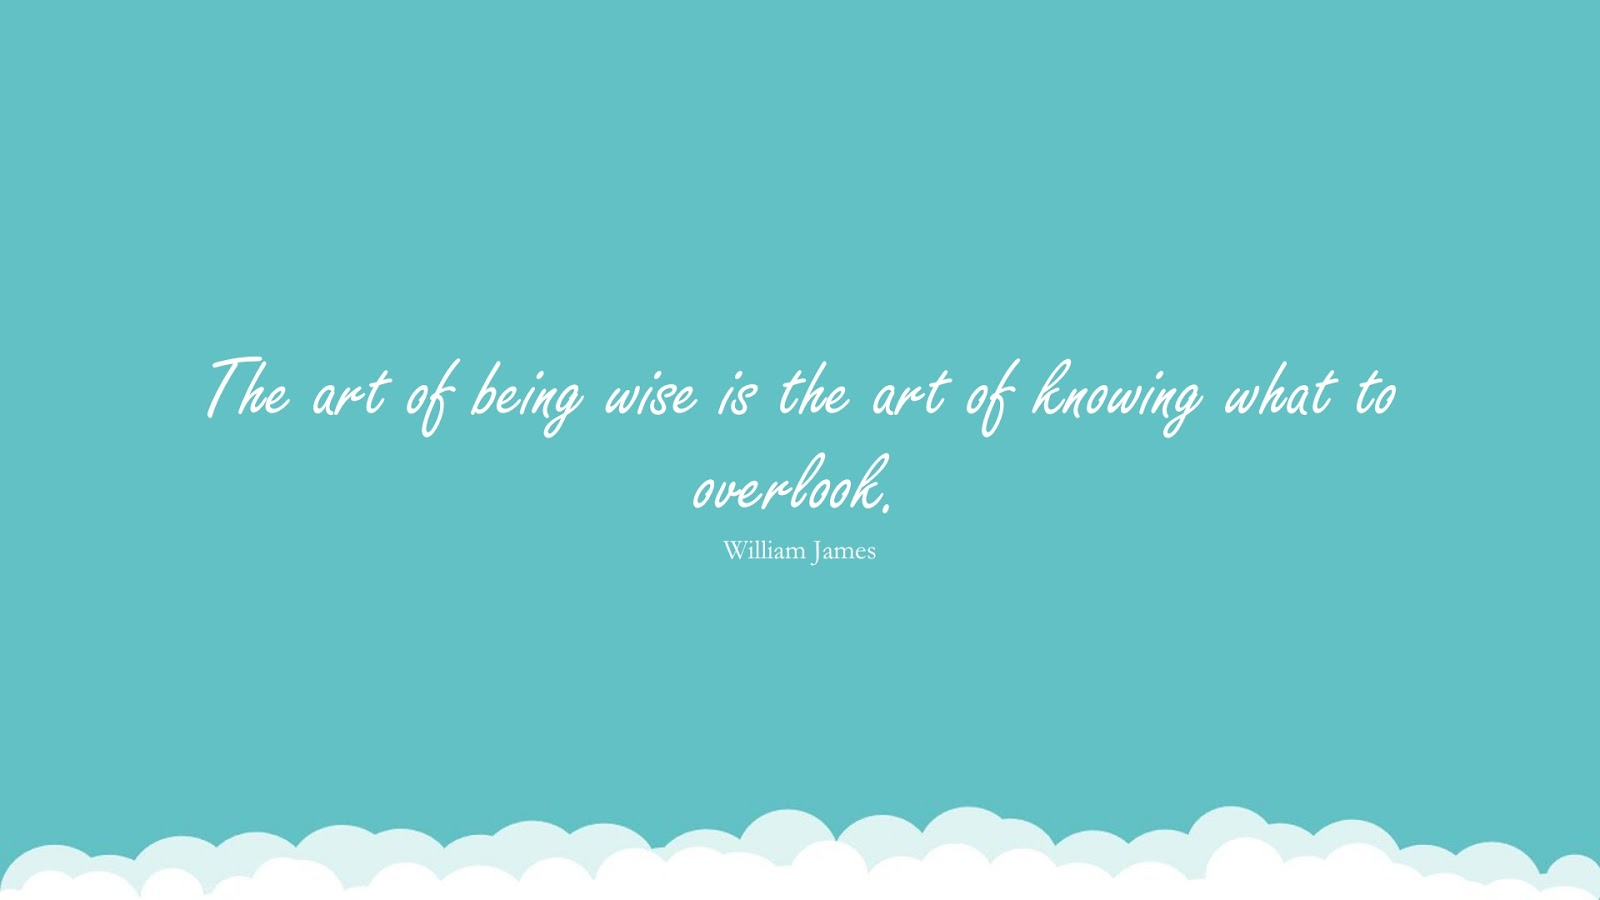 The art of being wise is the art of knowing what to overlook. (William James);  #KnowledgeQuotes